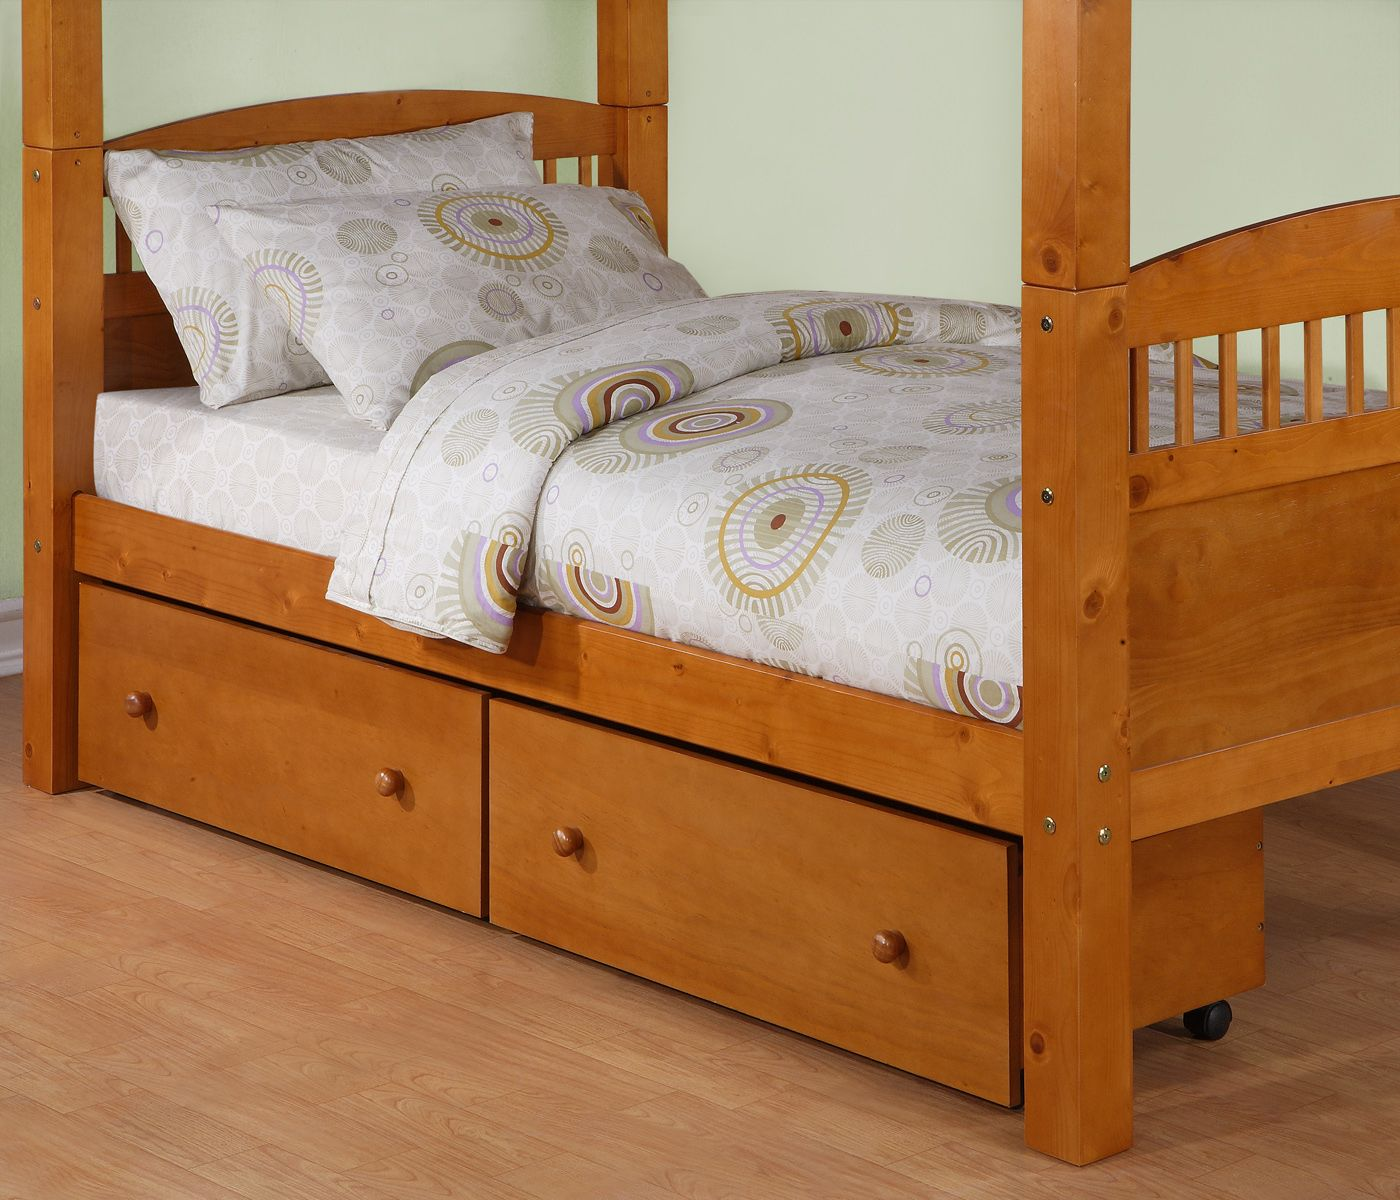 Pull Out Bed Under Bed Dorel Pine 2 Pack Underbed Storage Drawers